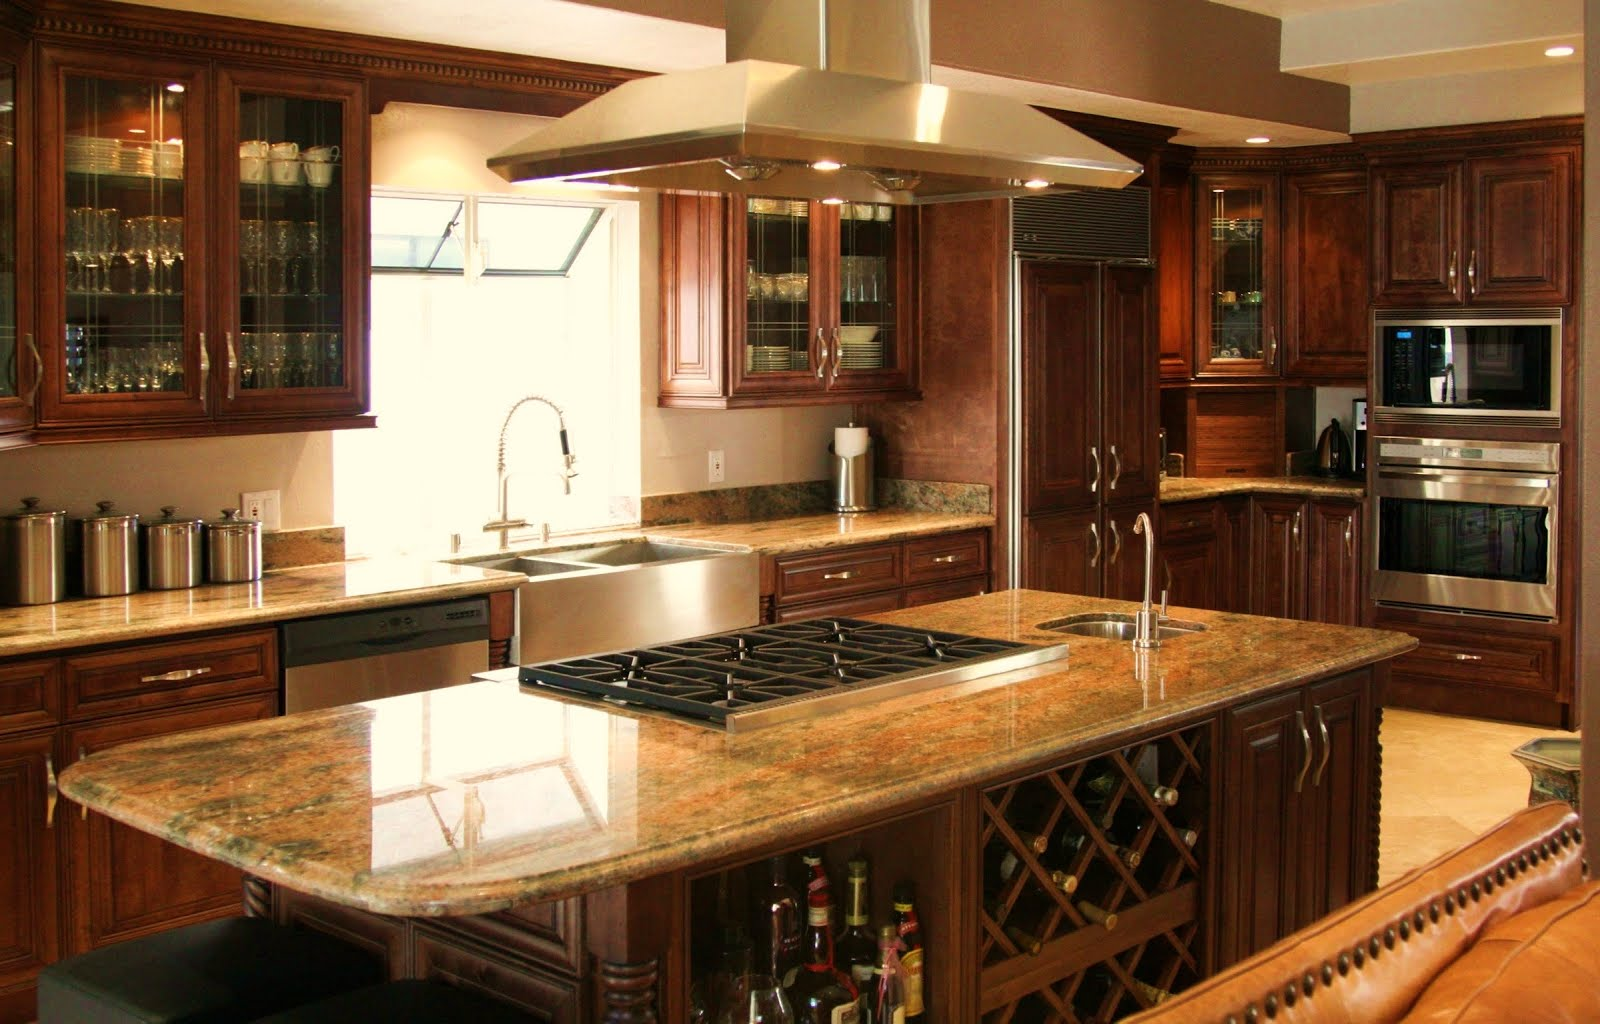 25 most popular luxury kitchen designs abcdiy for Most expensive kitchen cabinets